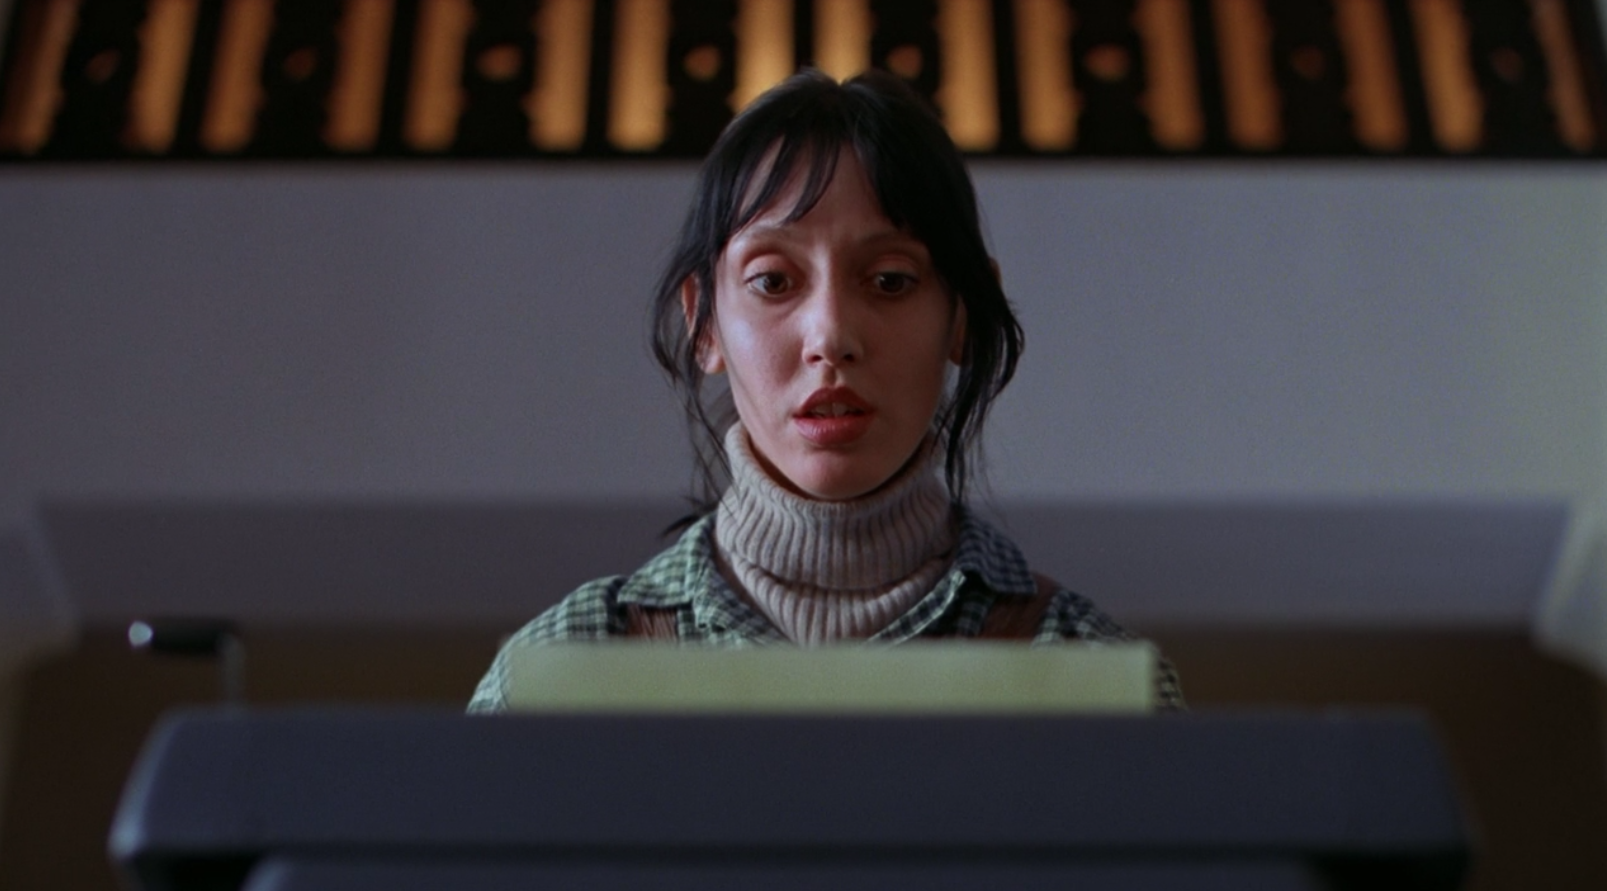 Vivian Kubrick Launches Fundraising Campaign For 'The Shining' Star Shelley Duvall - Bloody Disgusting